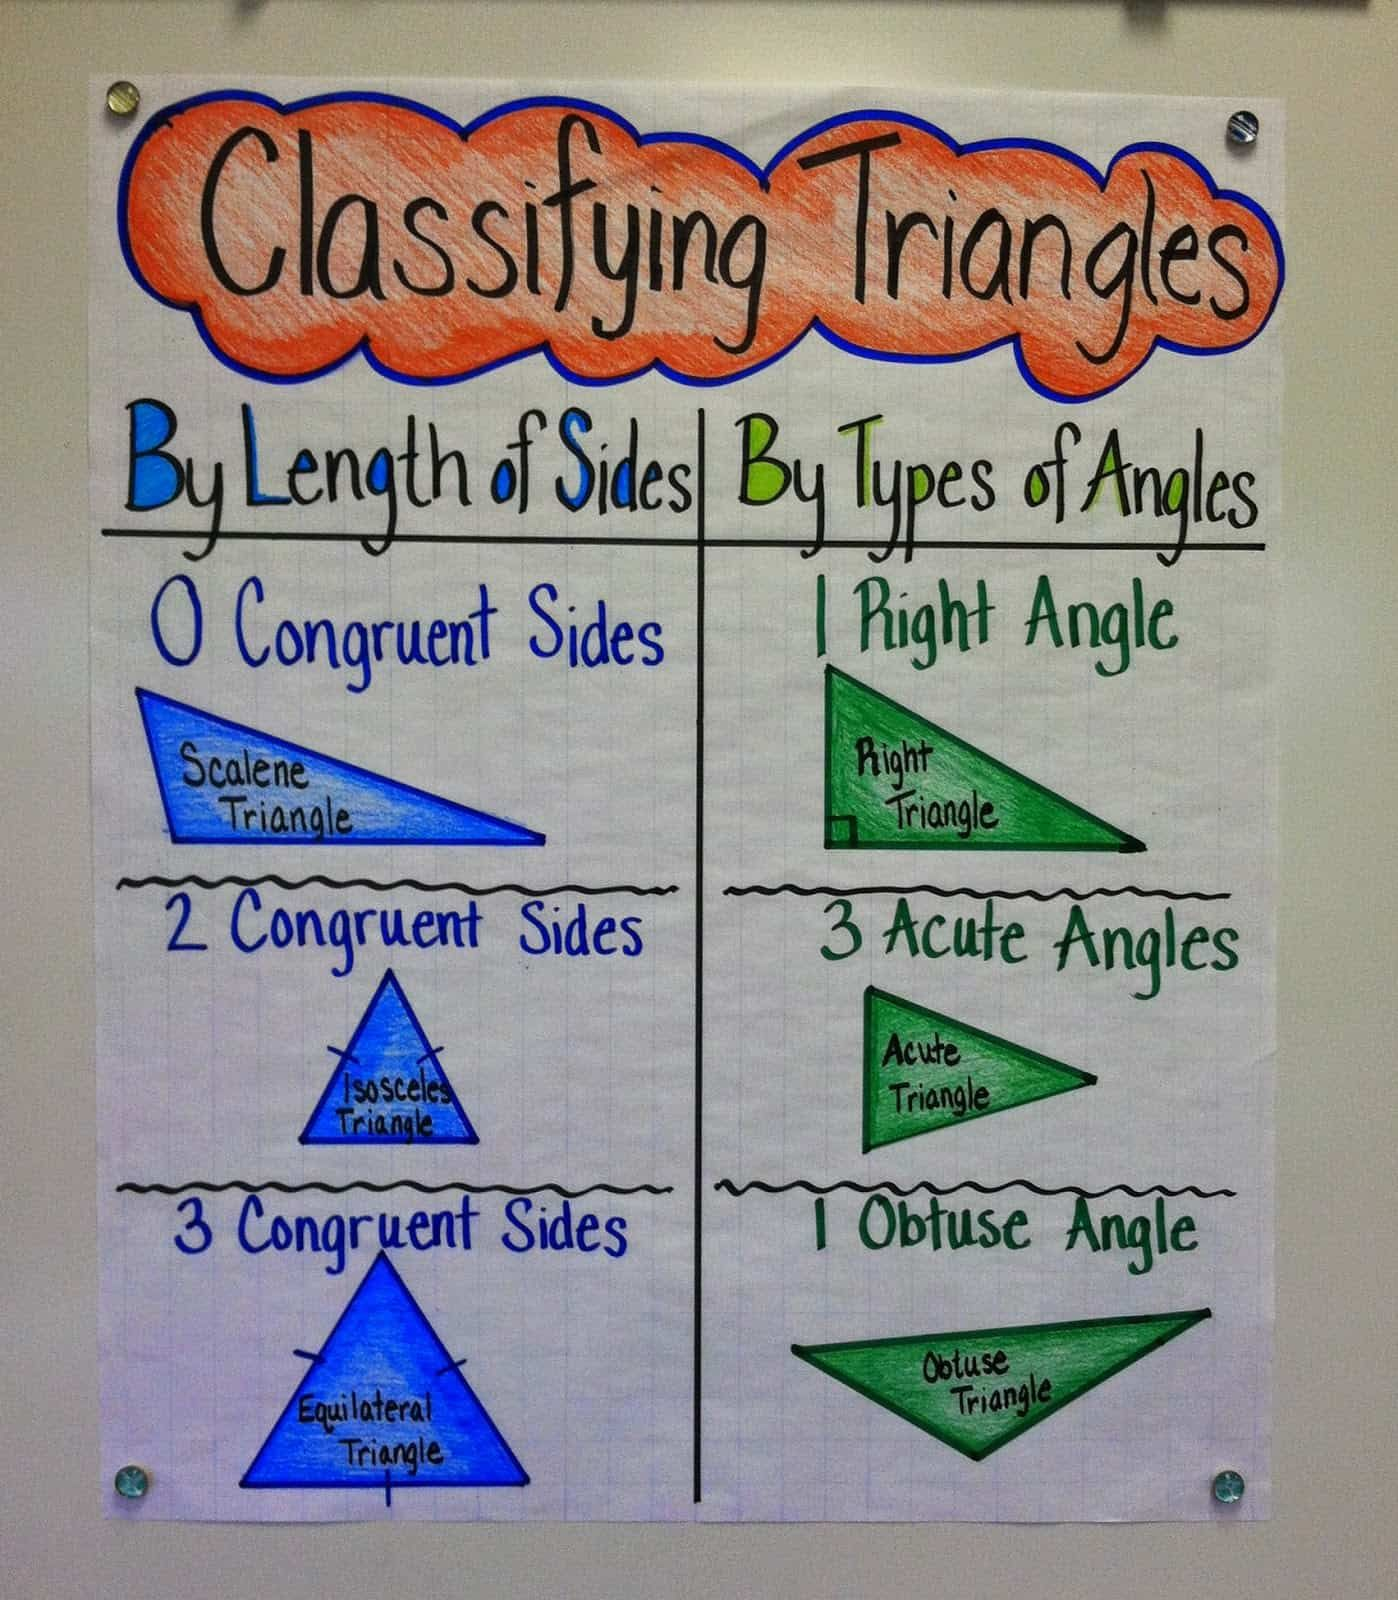 Triangle Classification Made Easy In